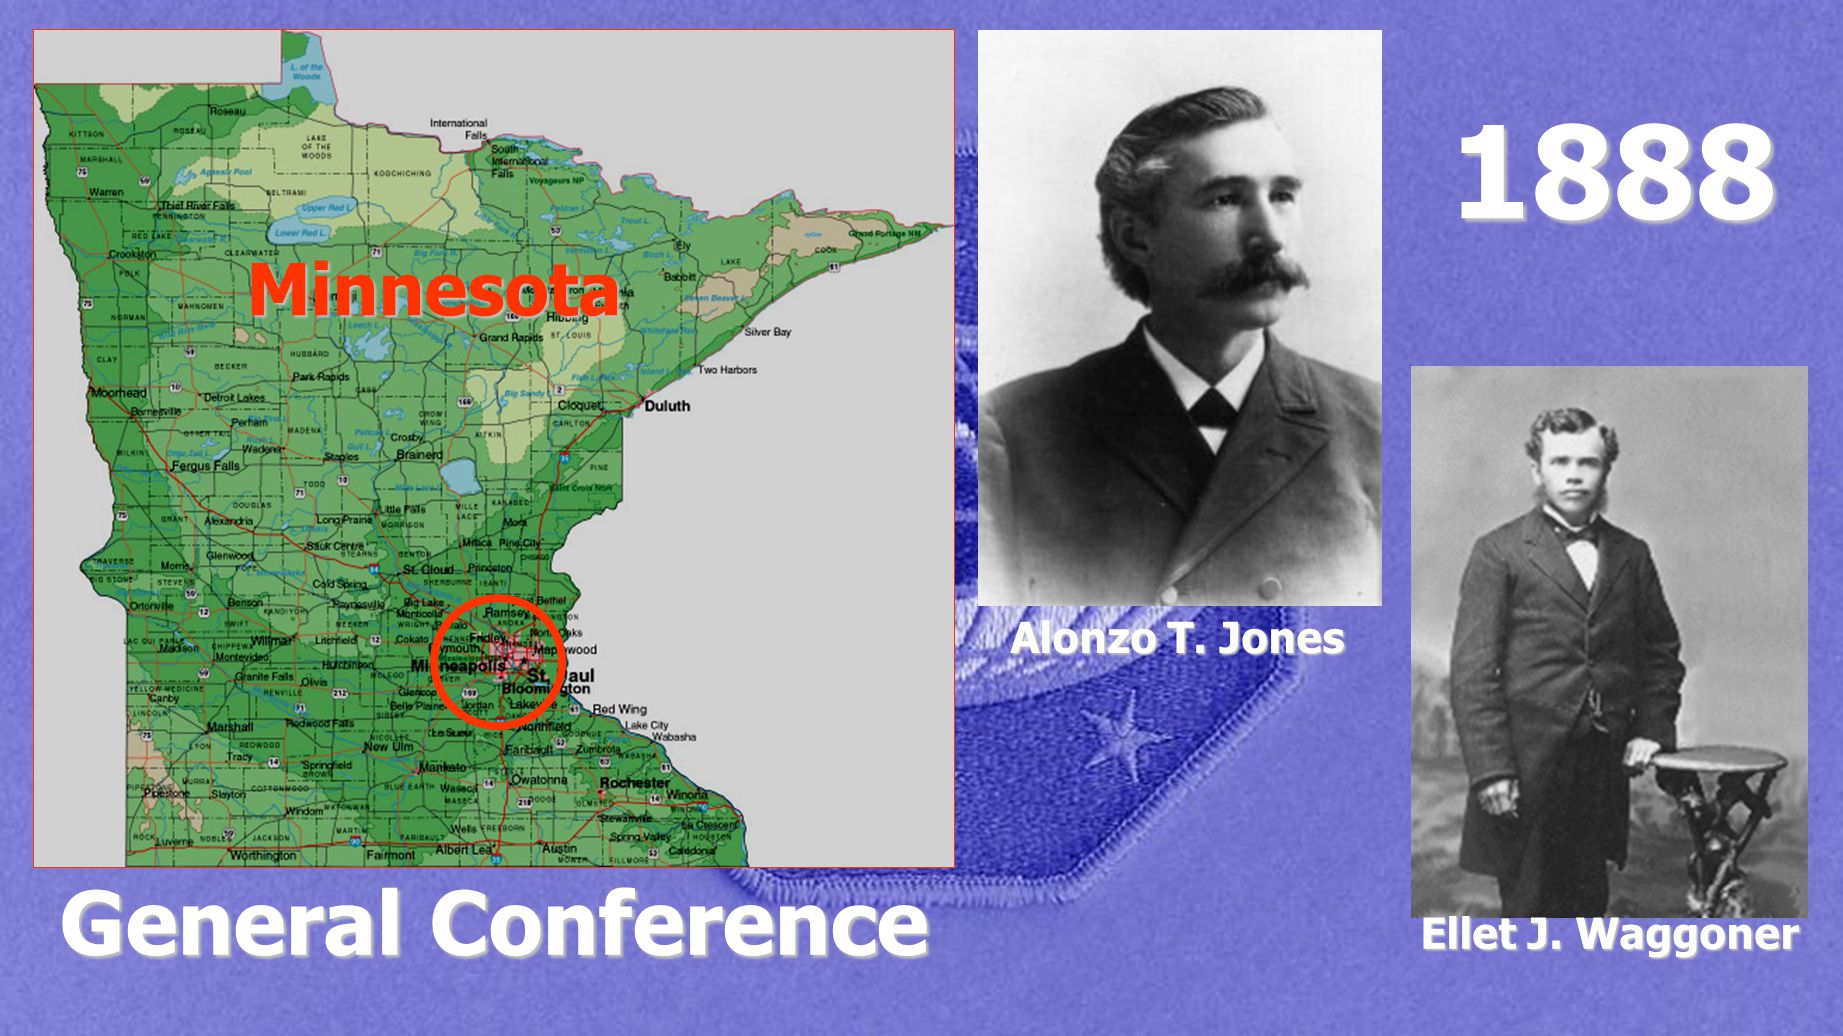 1888 Minnesota Alonzo T. Jones General Conference Ellet J. Waggoner